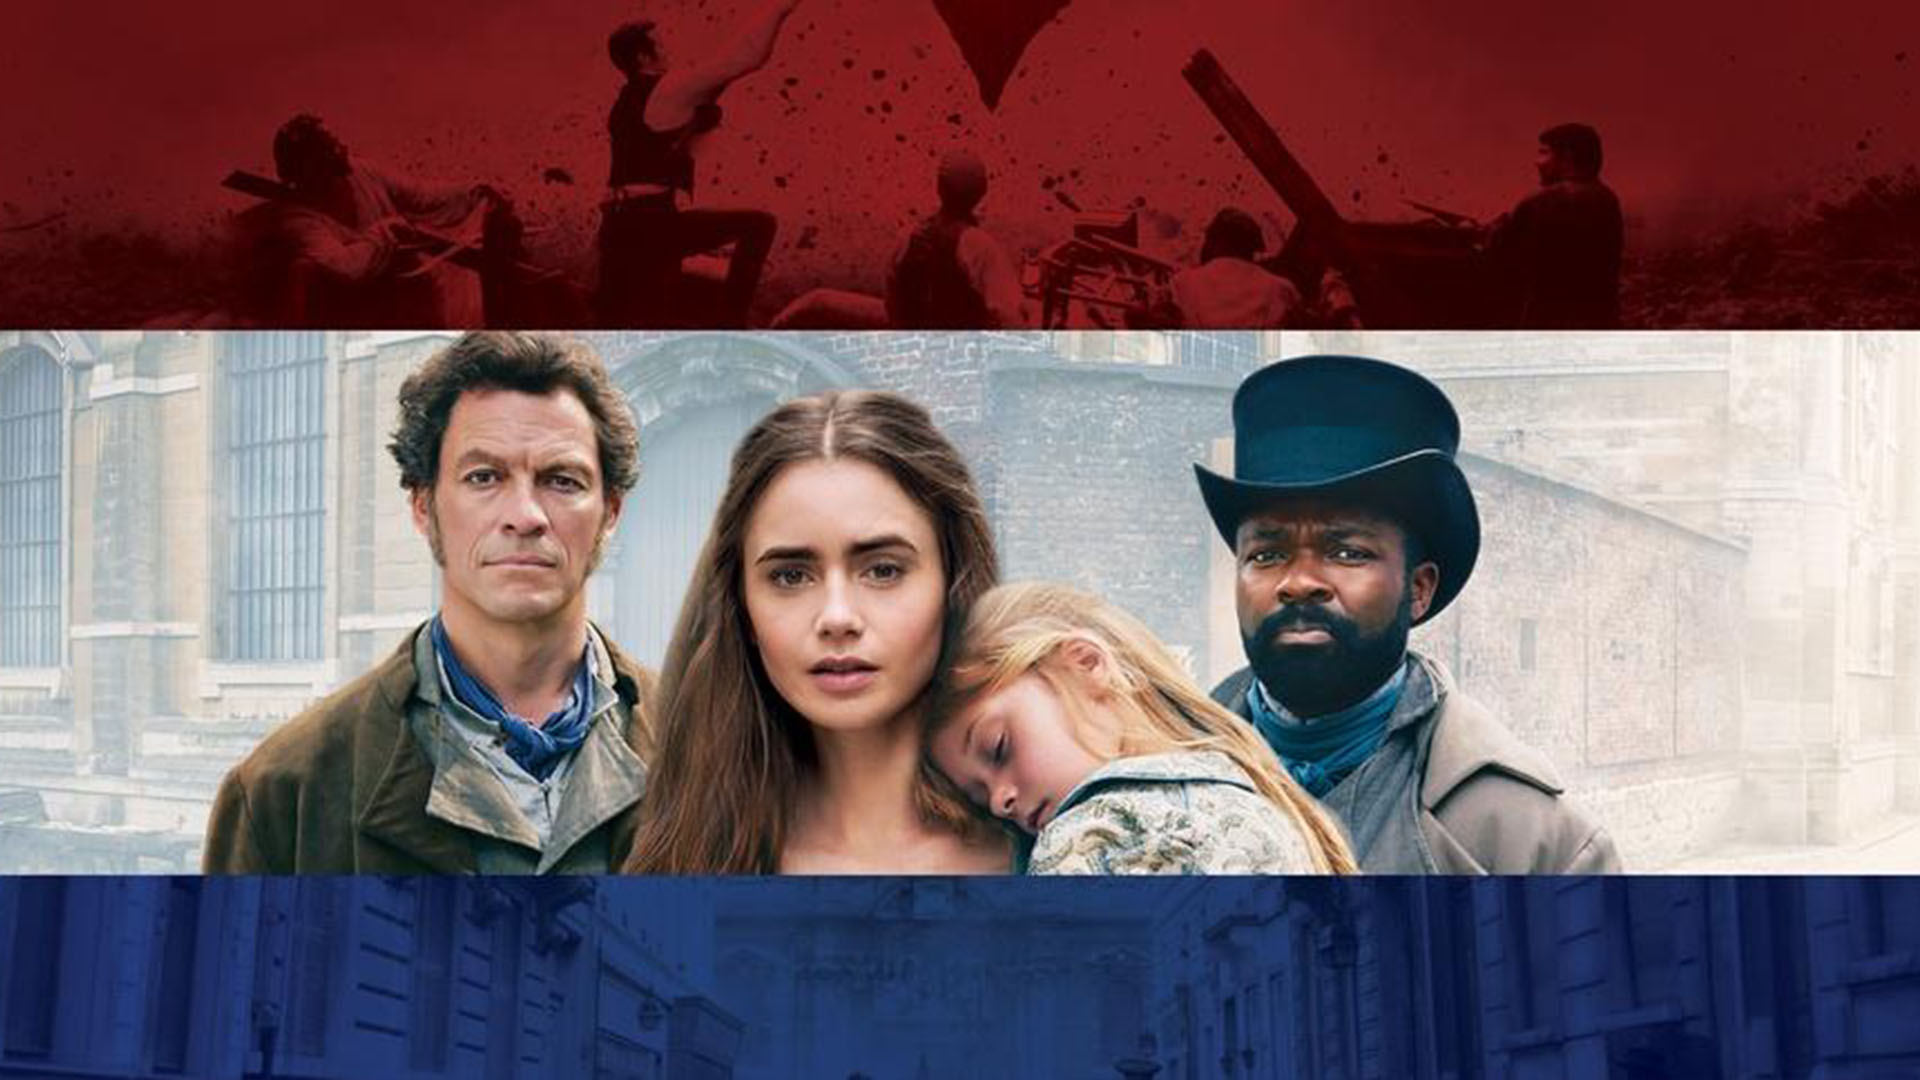 LES MISERABLES ON MASTERPIECE - SIX-PART SERIES - Beginning, Sunday, April 14 at 9:00 pm.